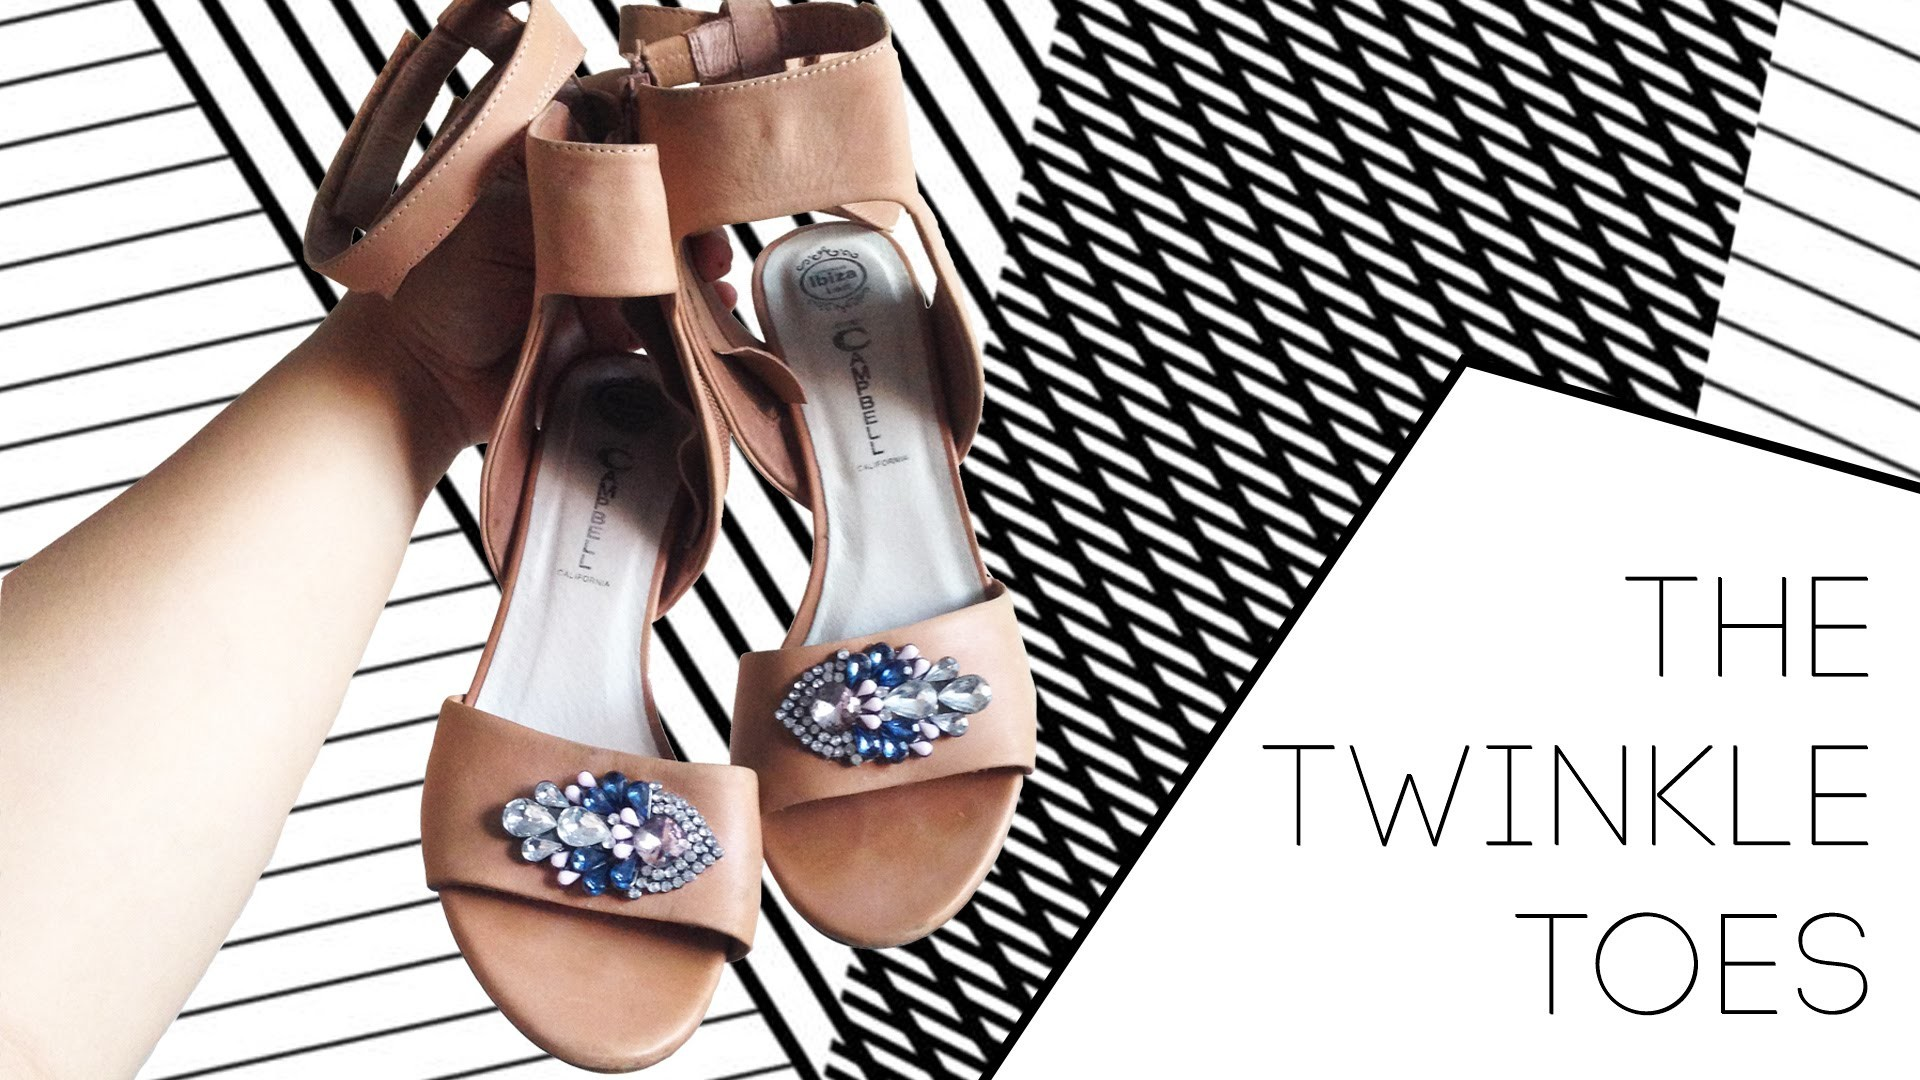 WHATDAYMADE DIY: The Twinkle Toes